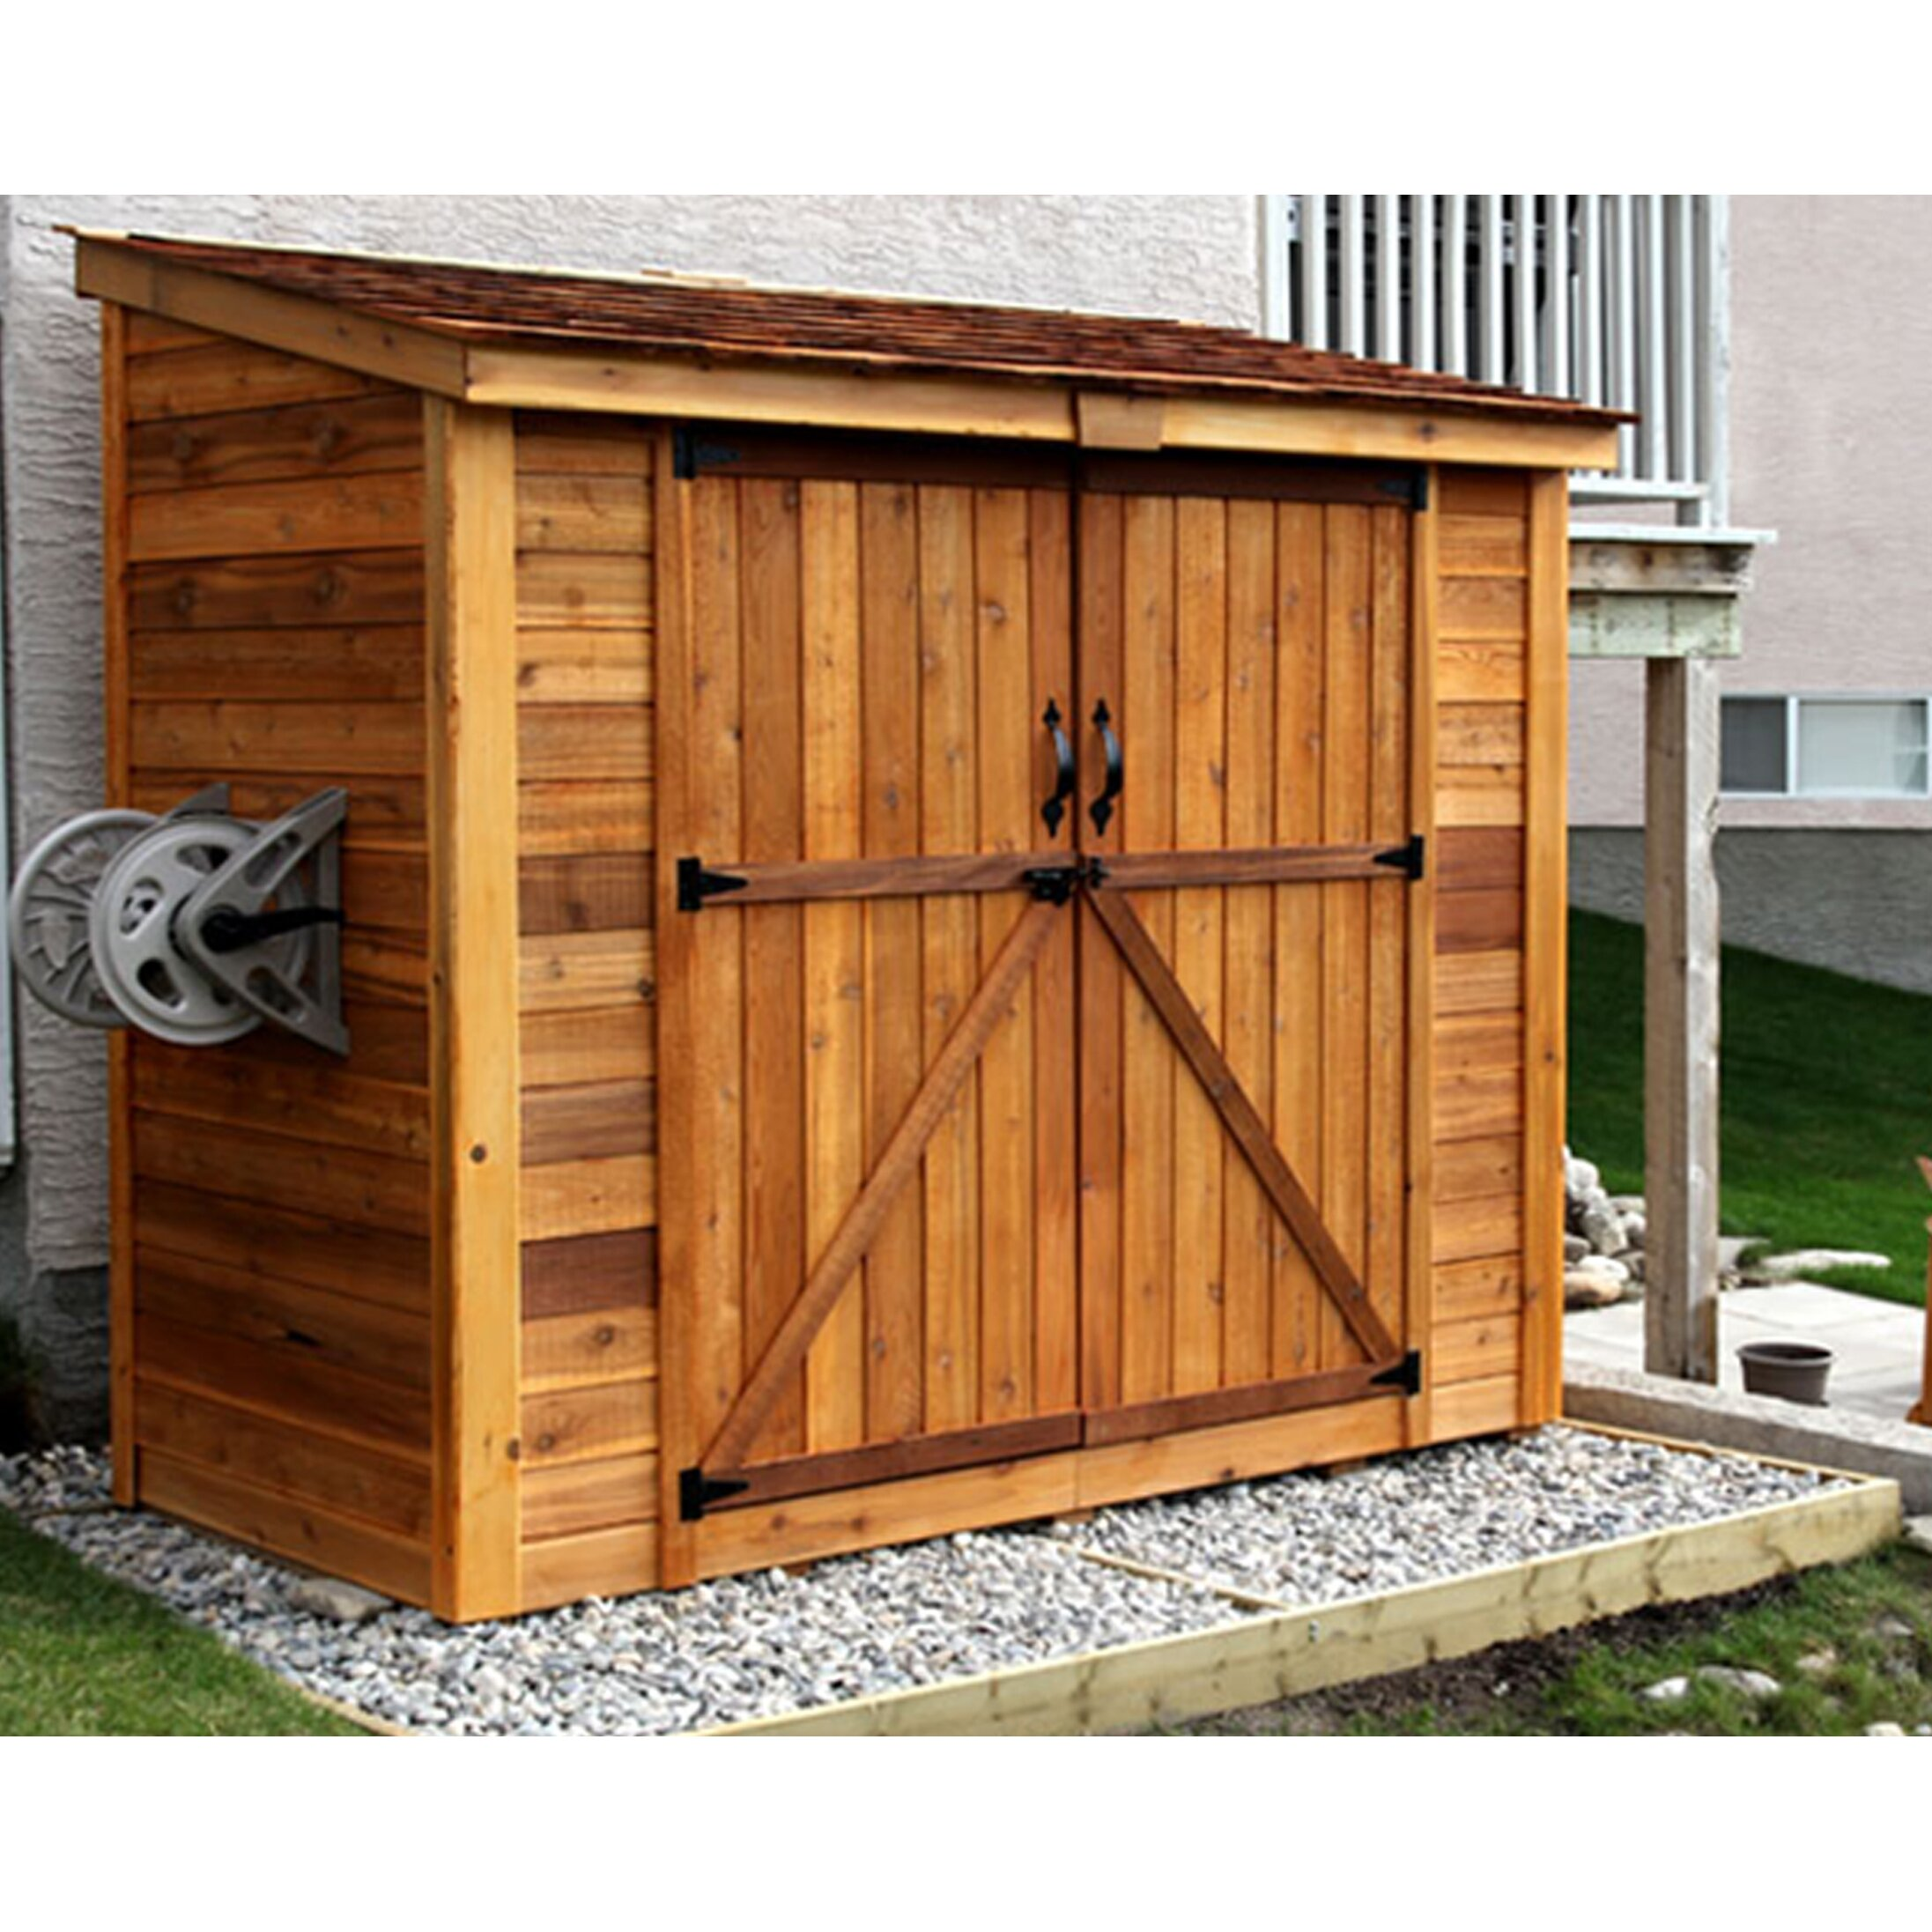 Outdoor living today spacesaver 8 ft w x 4 ft d garden for Garden shed 5 x 4